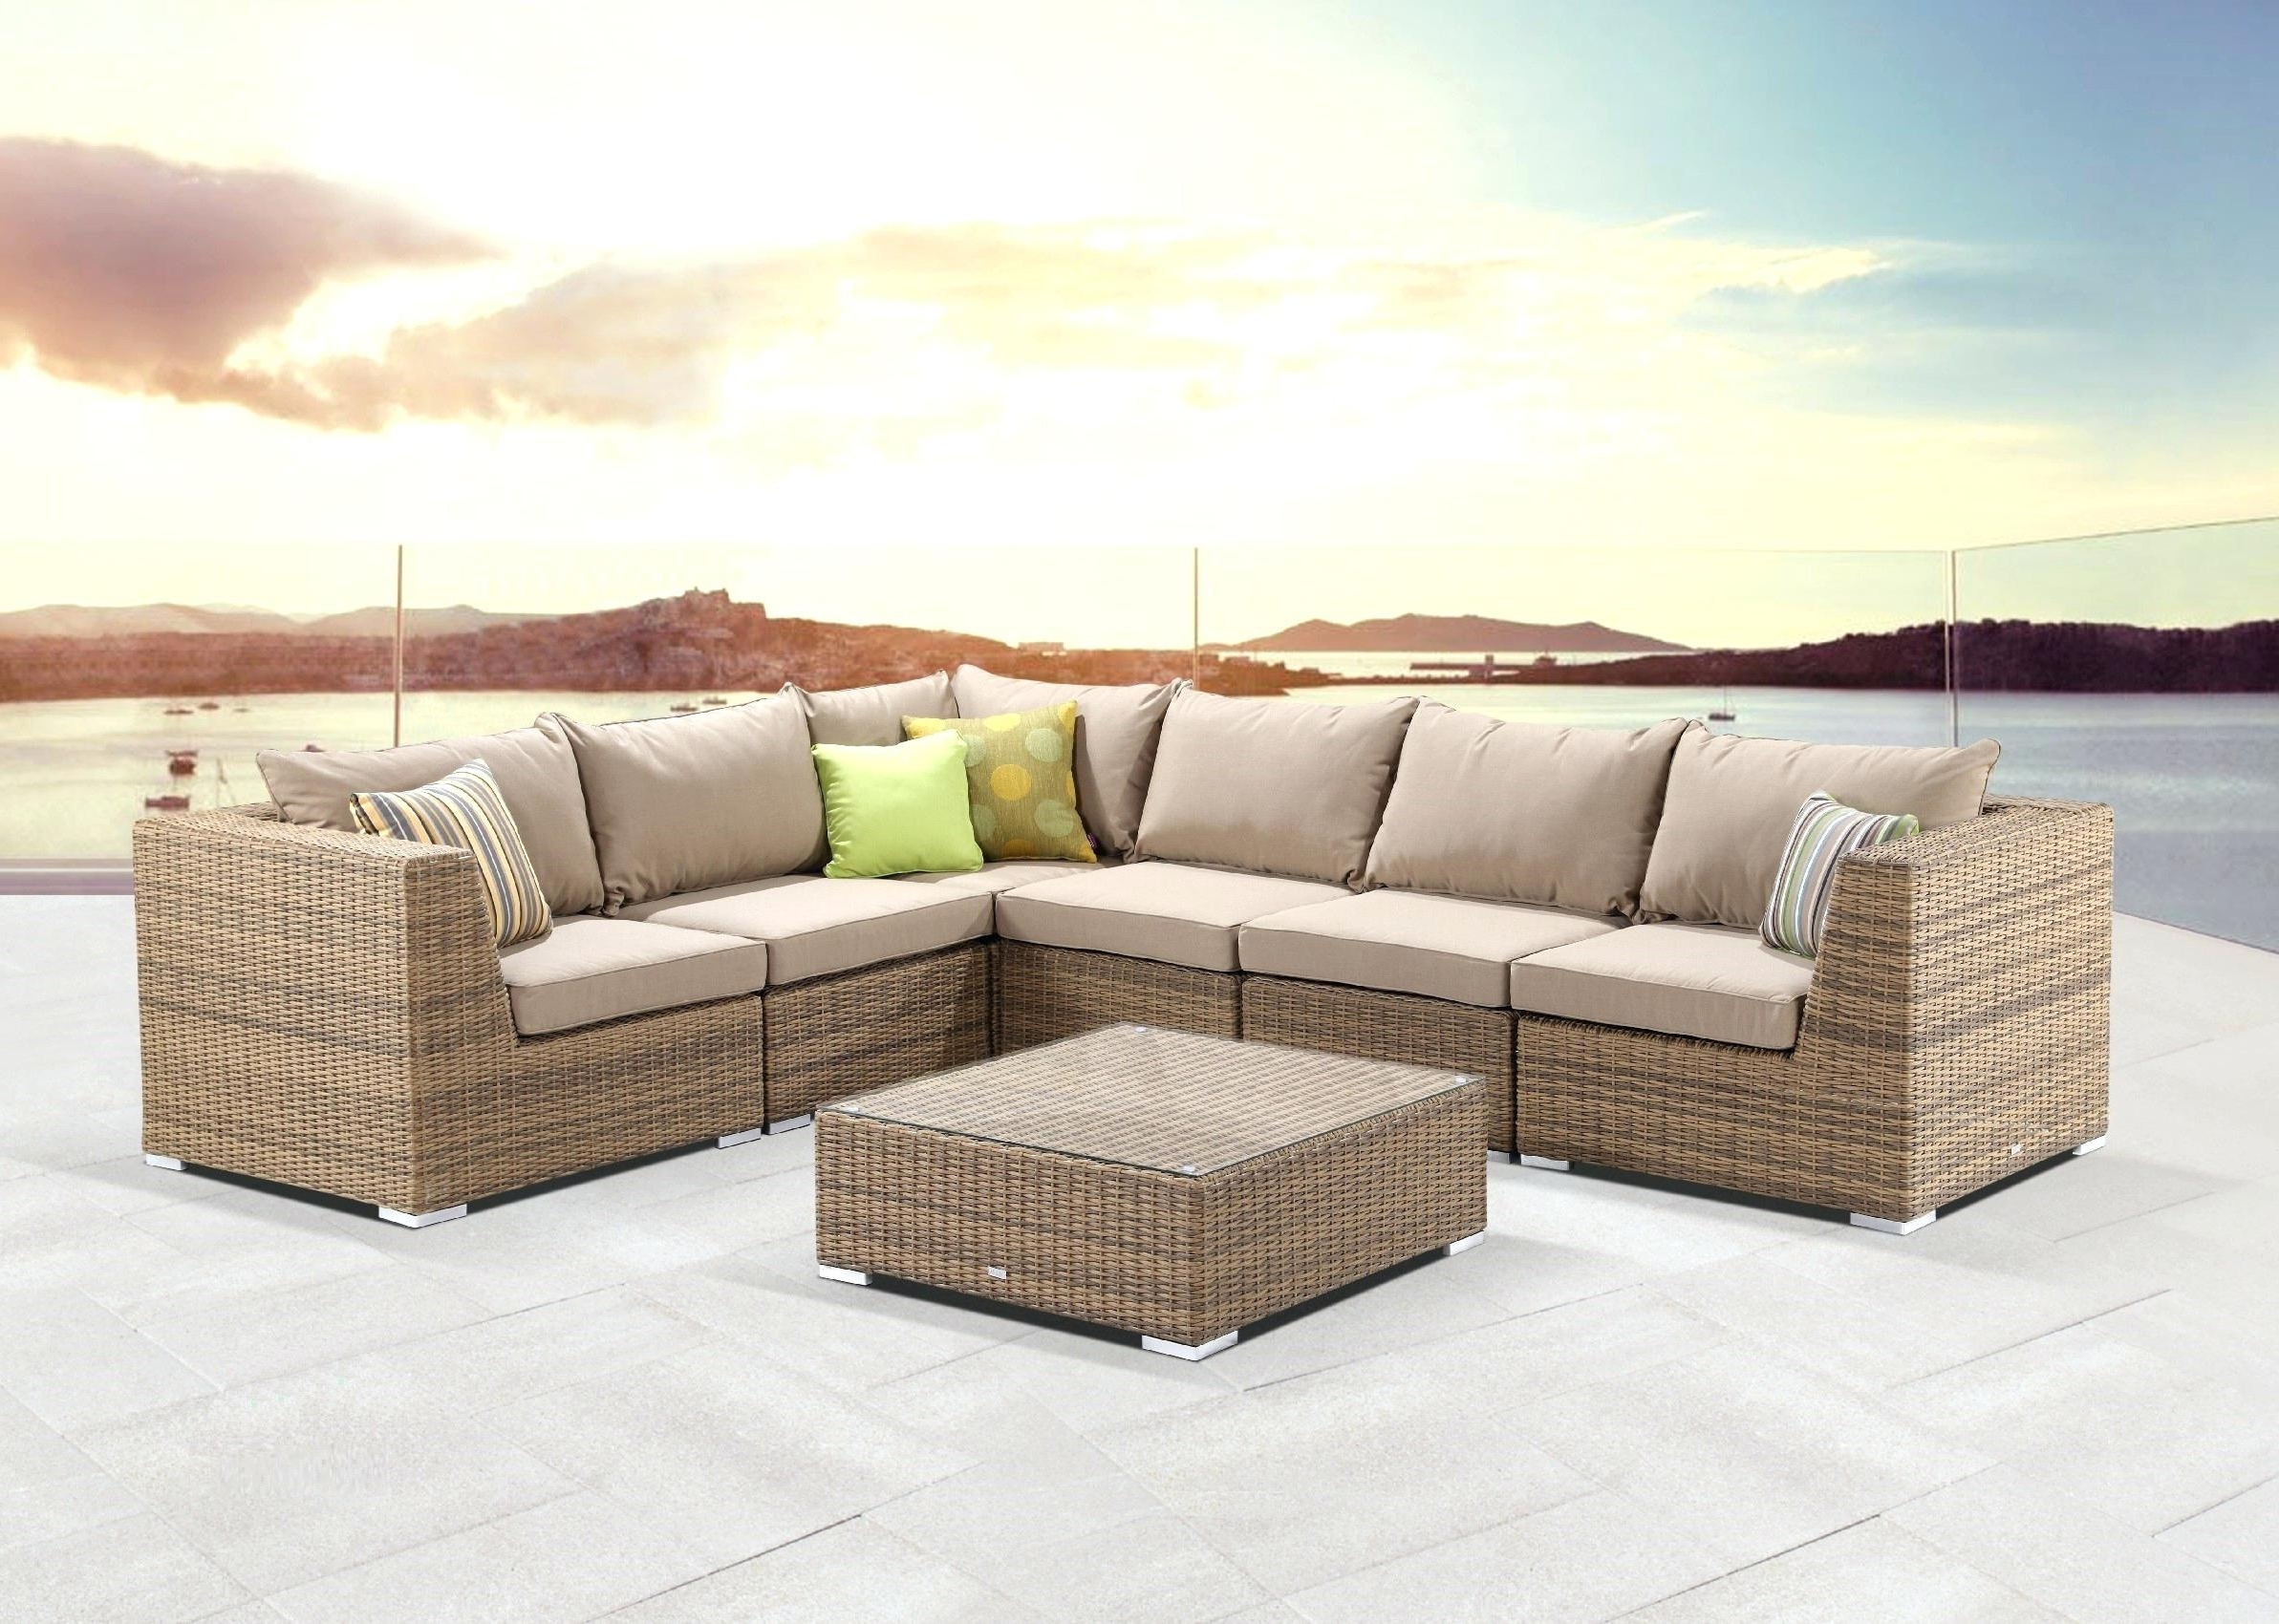 Trinidad Furniture Stores – 4parkar Throughout Widely Used Trinidad And Tobago Sectional Sofas (View 7 of 20)